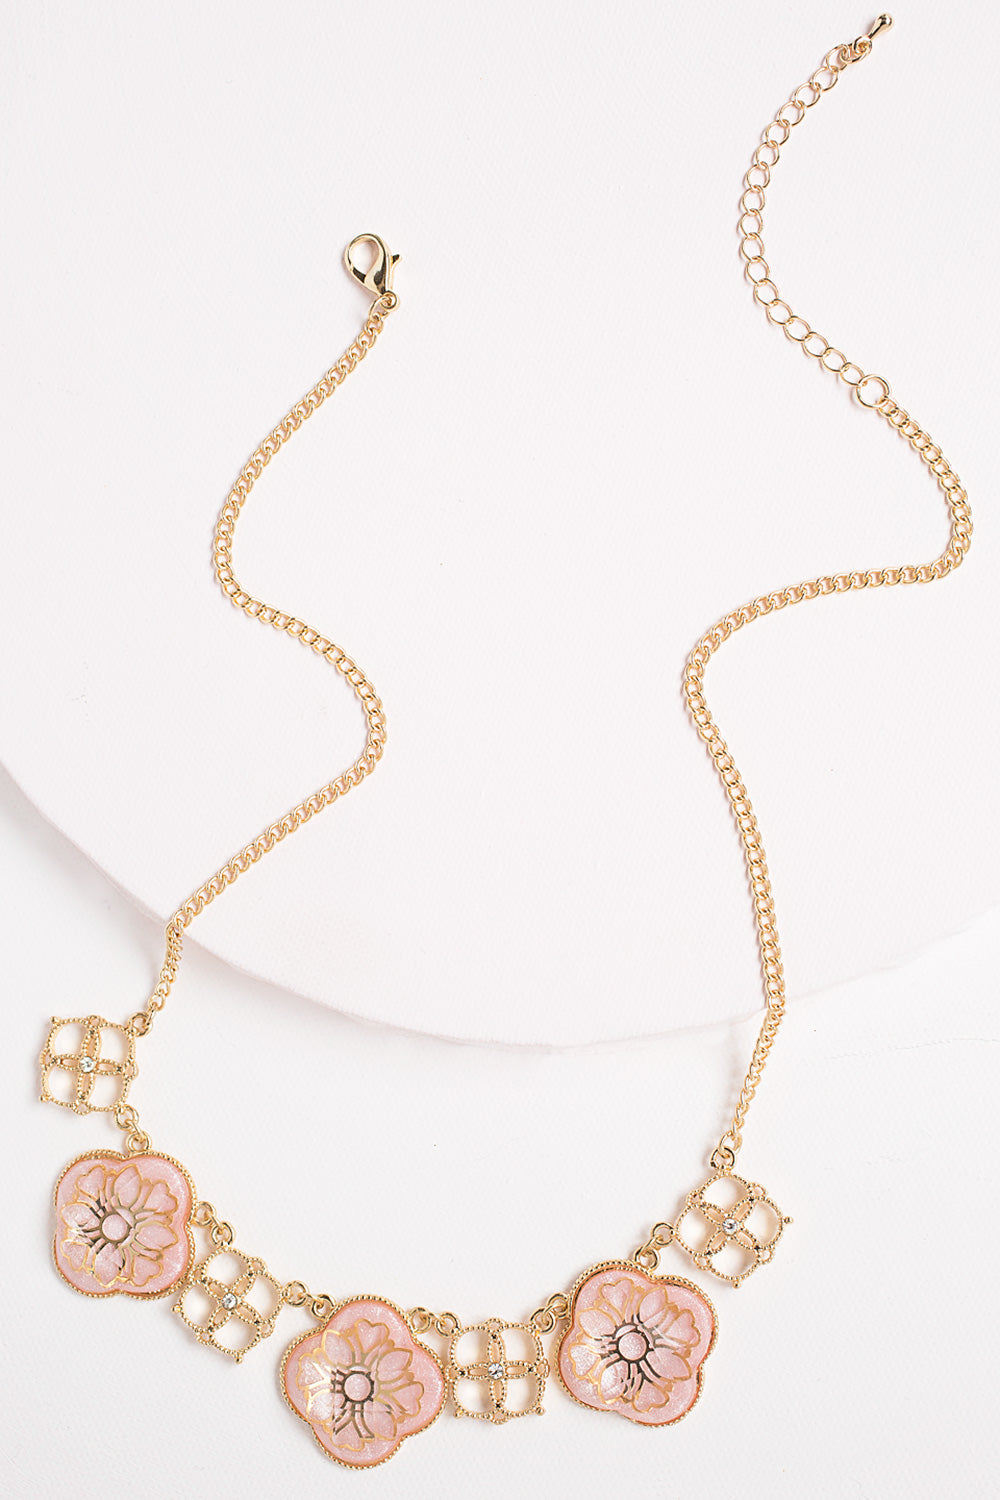 Type 1 Bright Spot Necklace